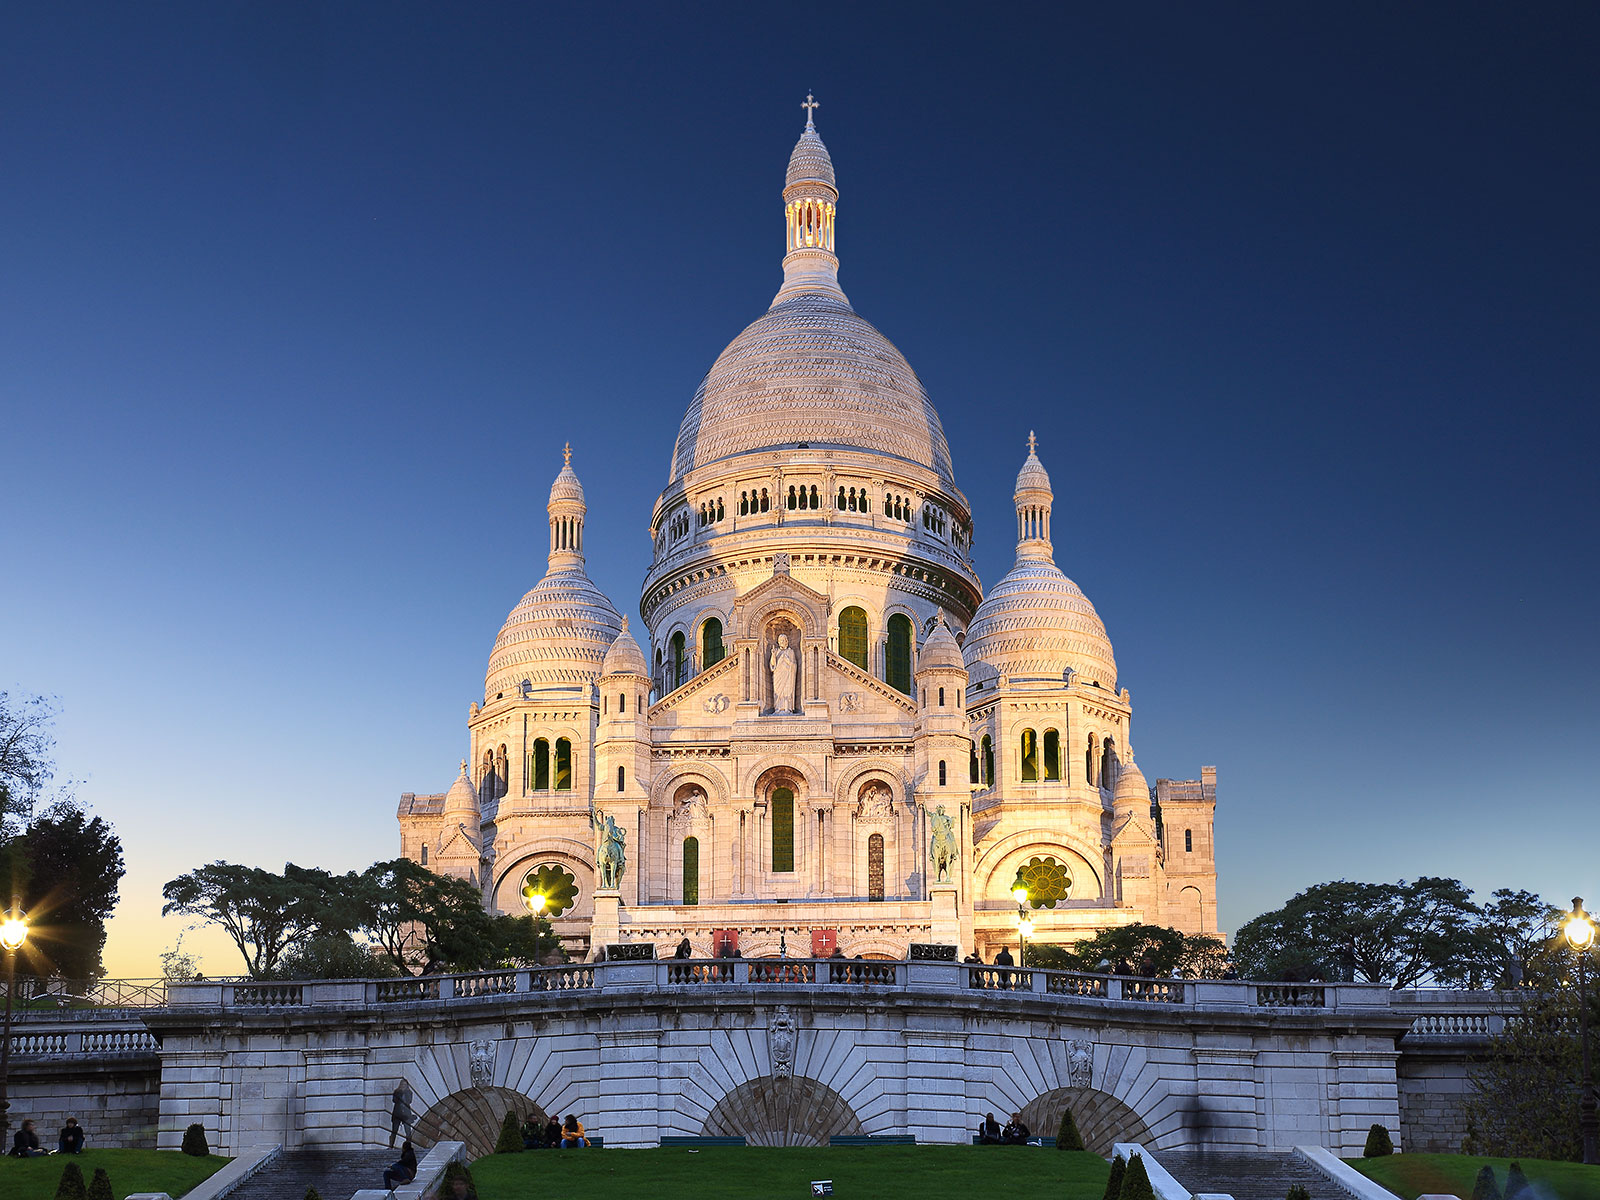 where to eat while sightseeing in paris